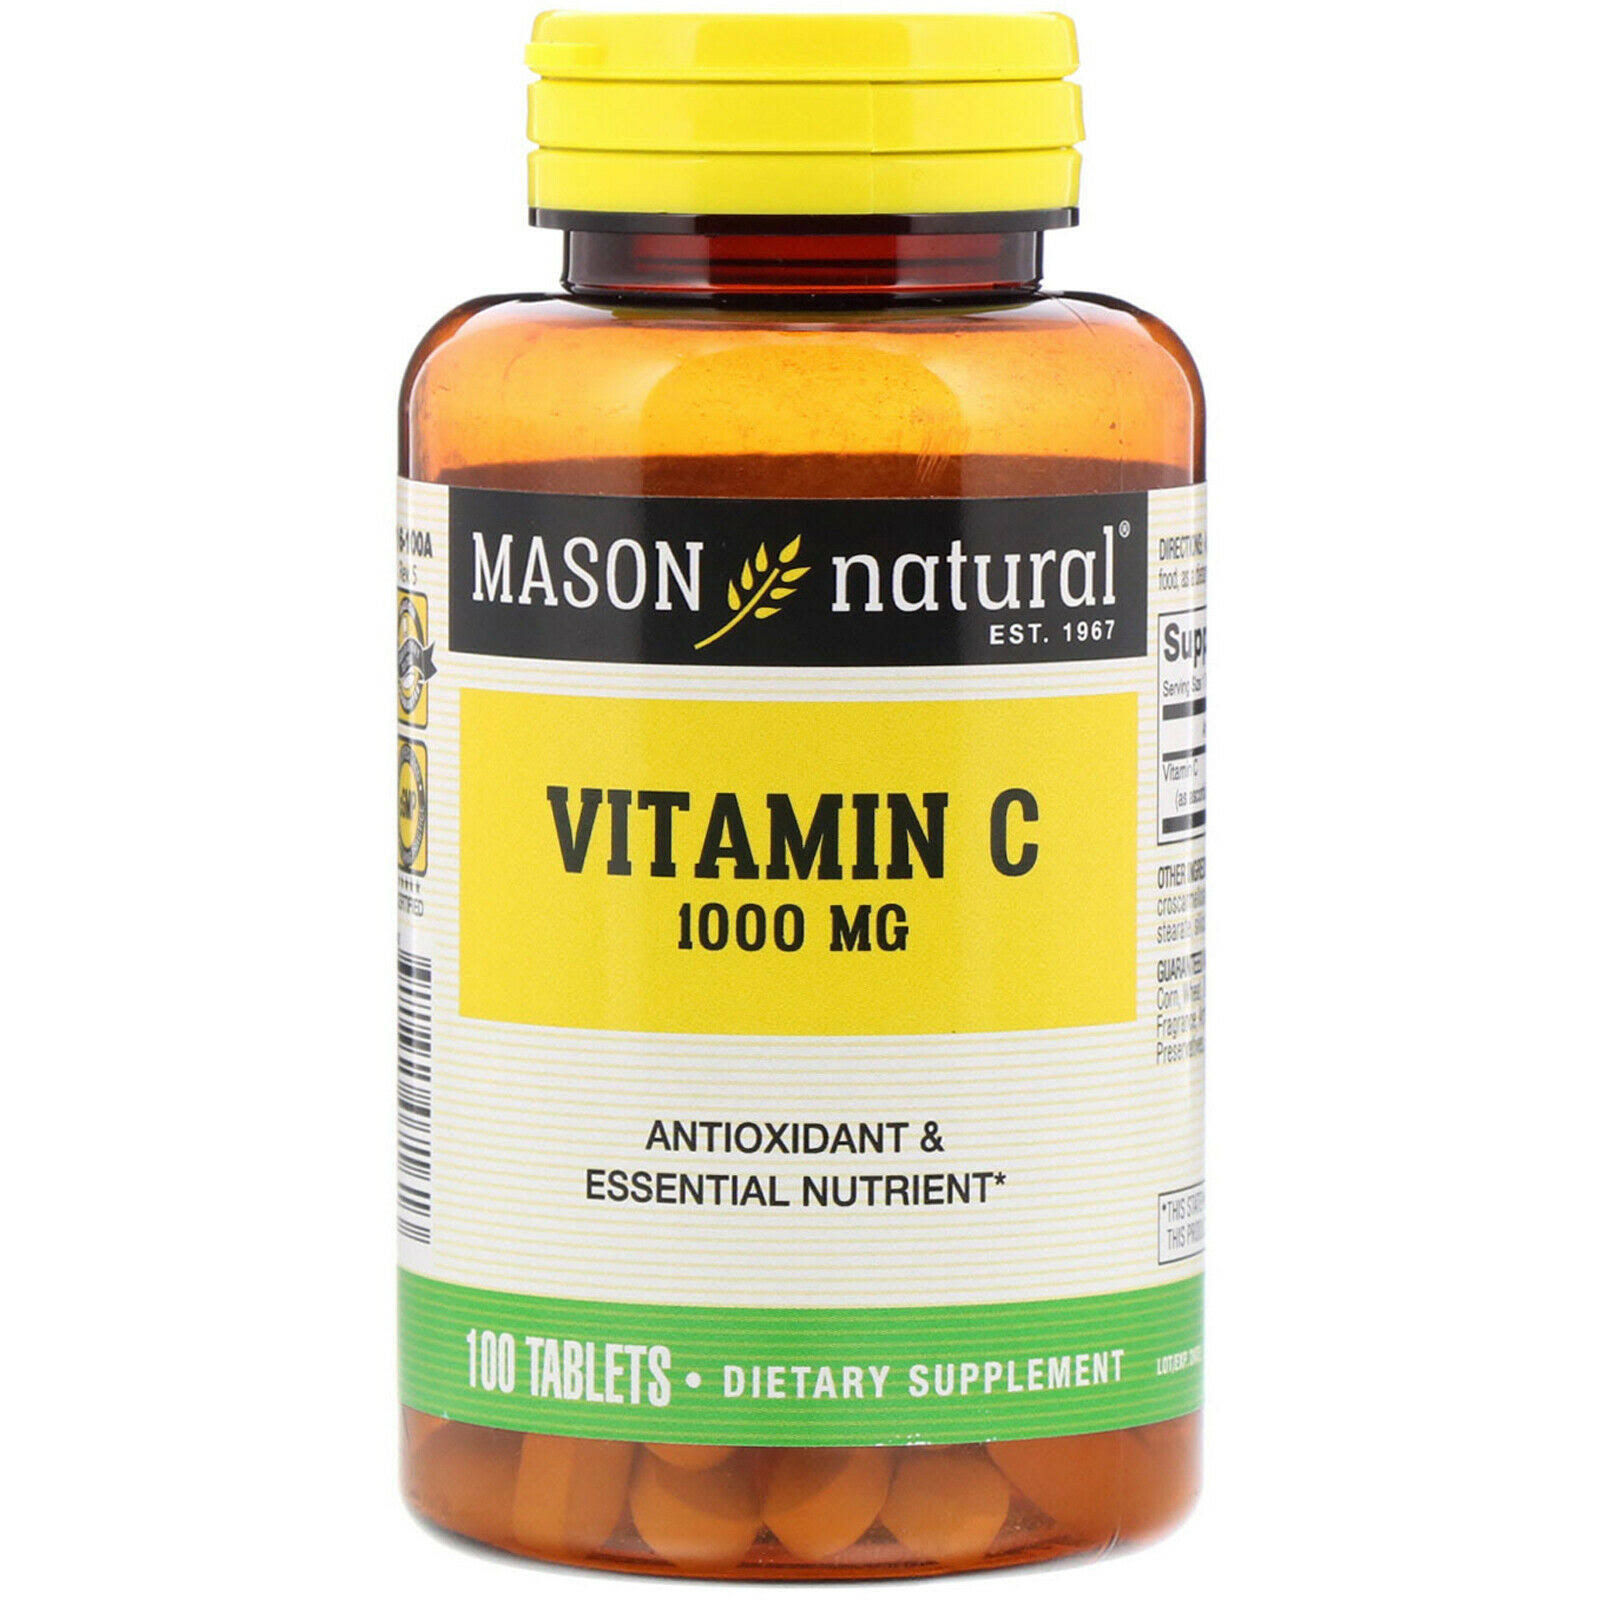 Mason Vitamins C 1000Mg Pure Ascorbic Acid Tablets - 100ct